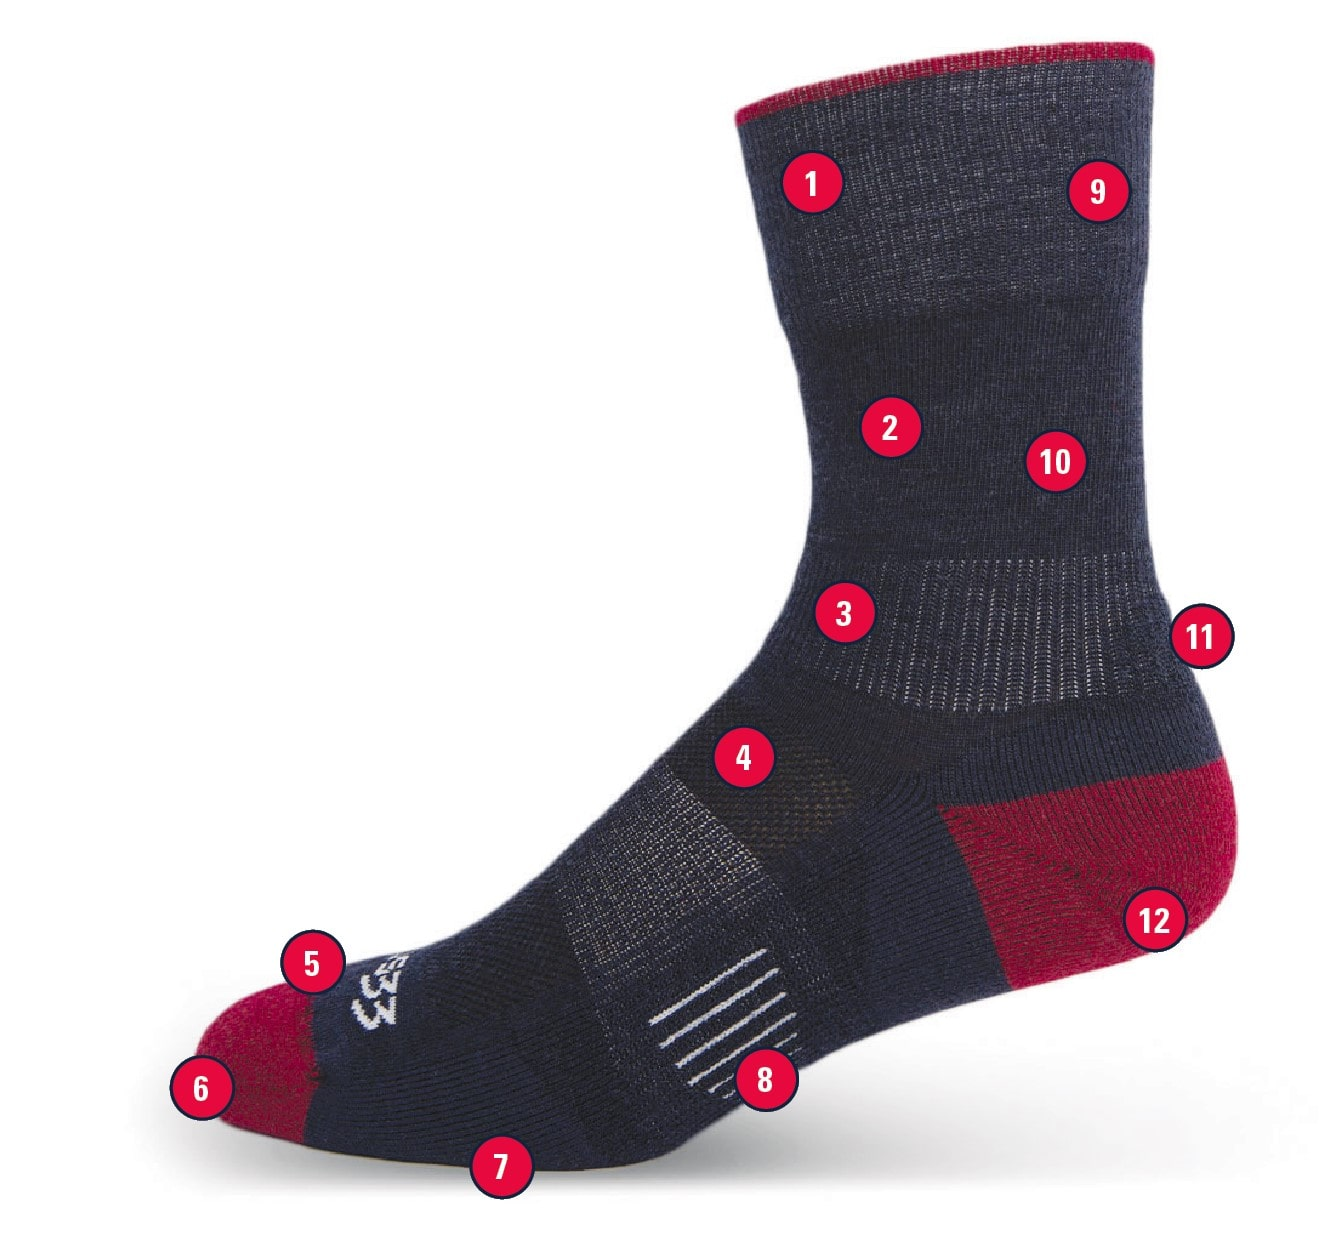 Infographic showing Mountain Heritage Made in USA Wool Sock Features